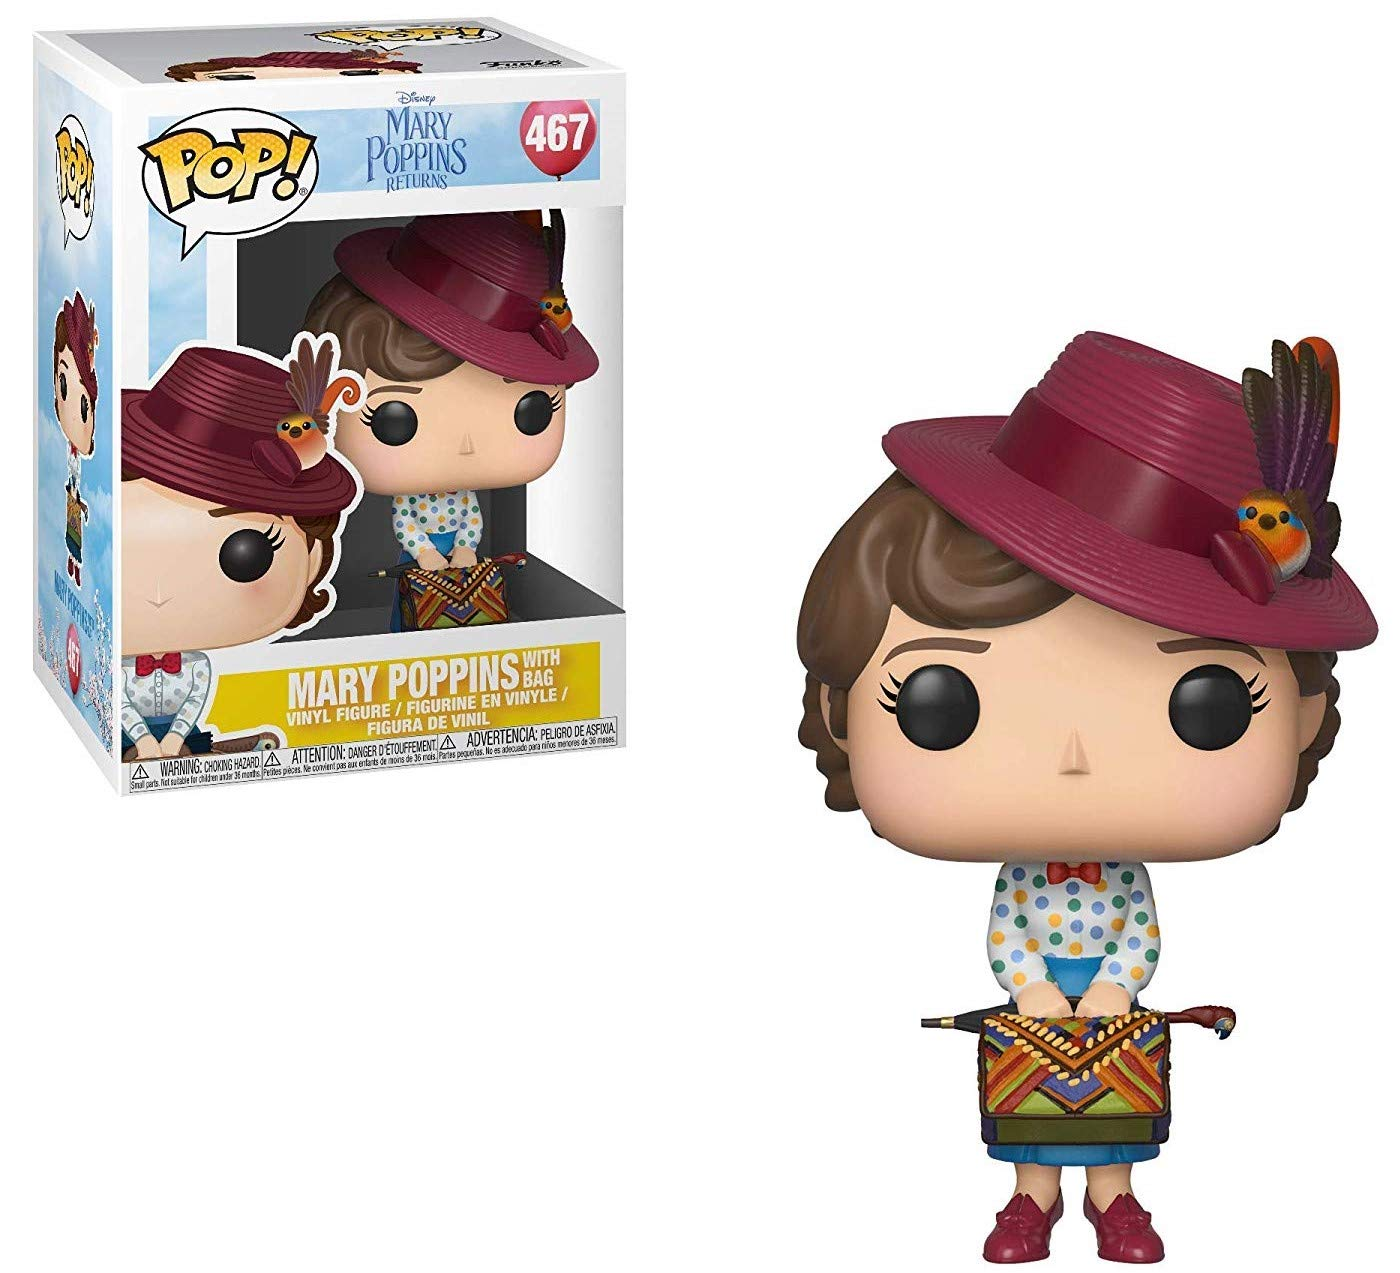 Mary Poppins with Bag Vinyl Figure Includes Pop Box Protector Case Disney: Mary Poppins Returns Funko Pop